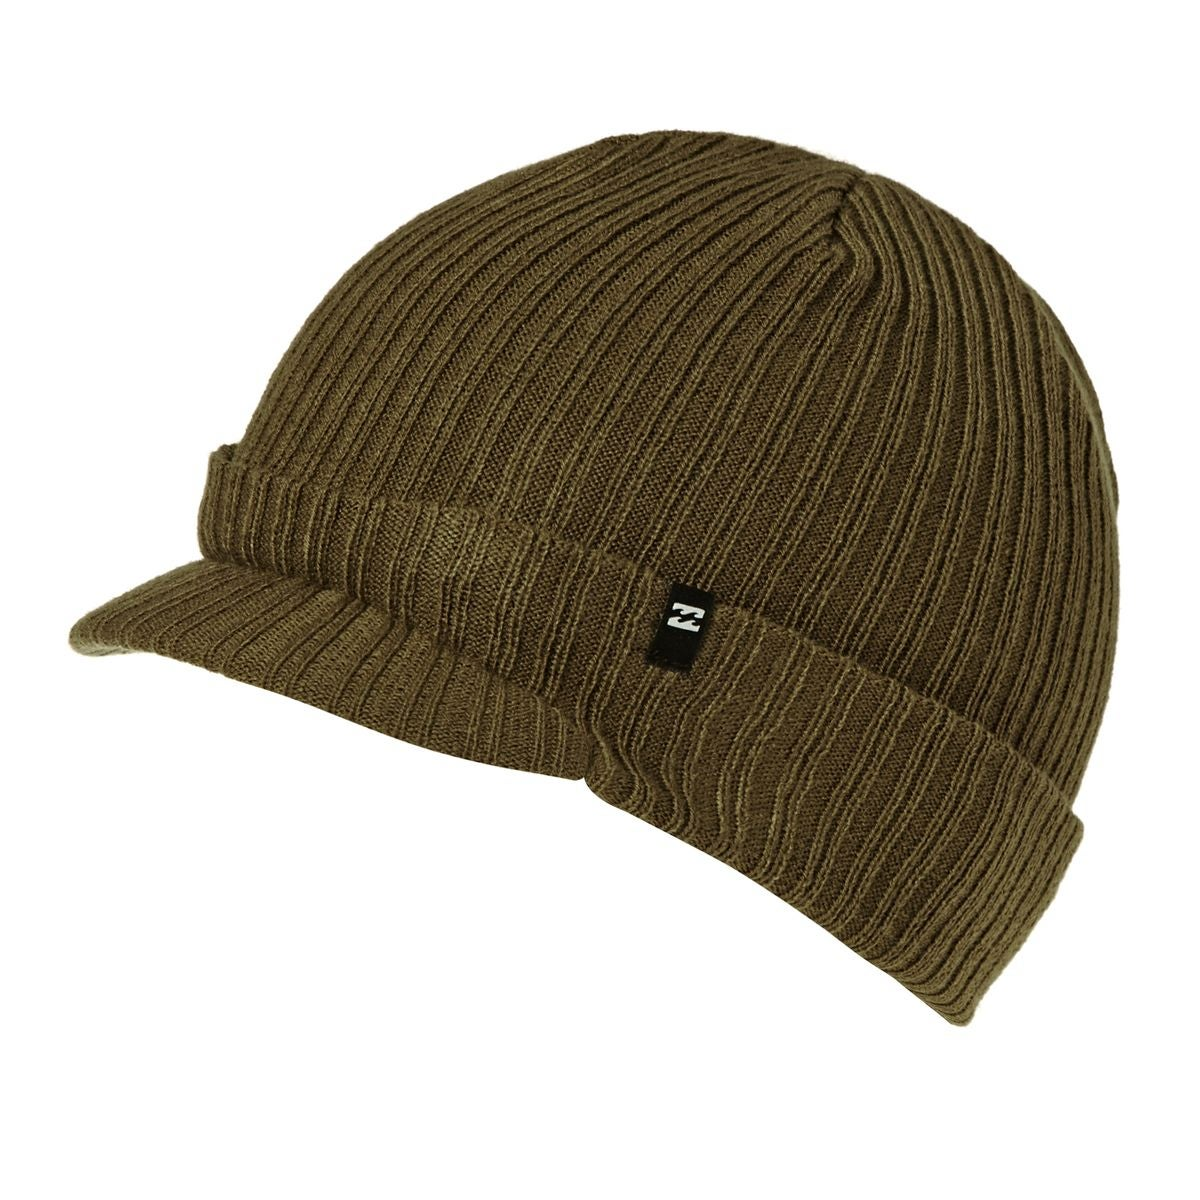 5956f3c5c83 Billabong Arcade Brim Mens Headwear Beanie Hat - Camel One Size